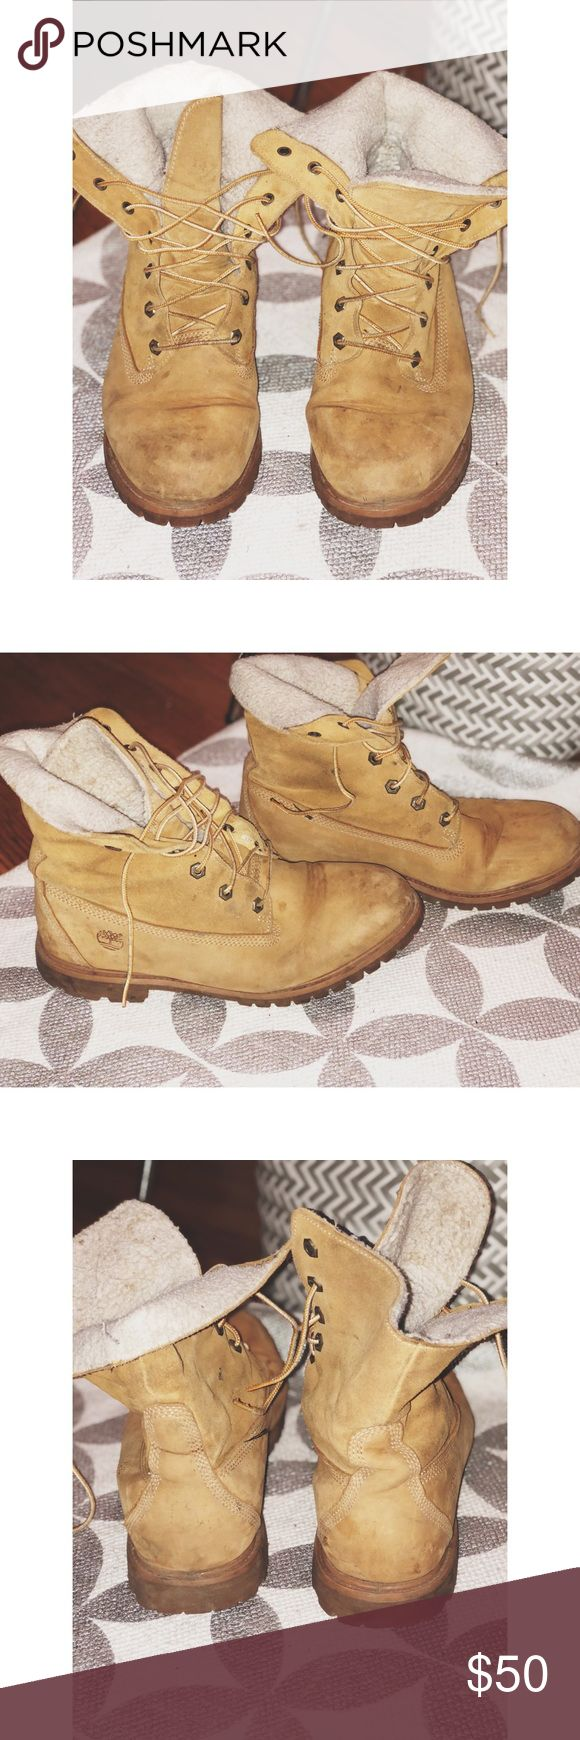 Fleece lined timberland boots! Size 11 timberland boots Well worn, but tons of life left Fit a little big, which is good to wear with thick socks in the winter! Timberland Shoes Lace Up Boots